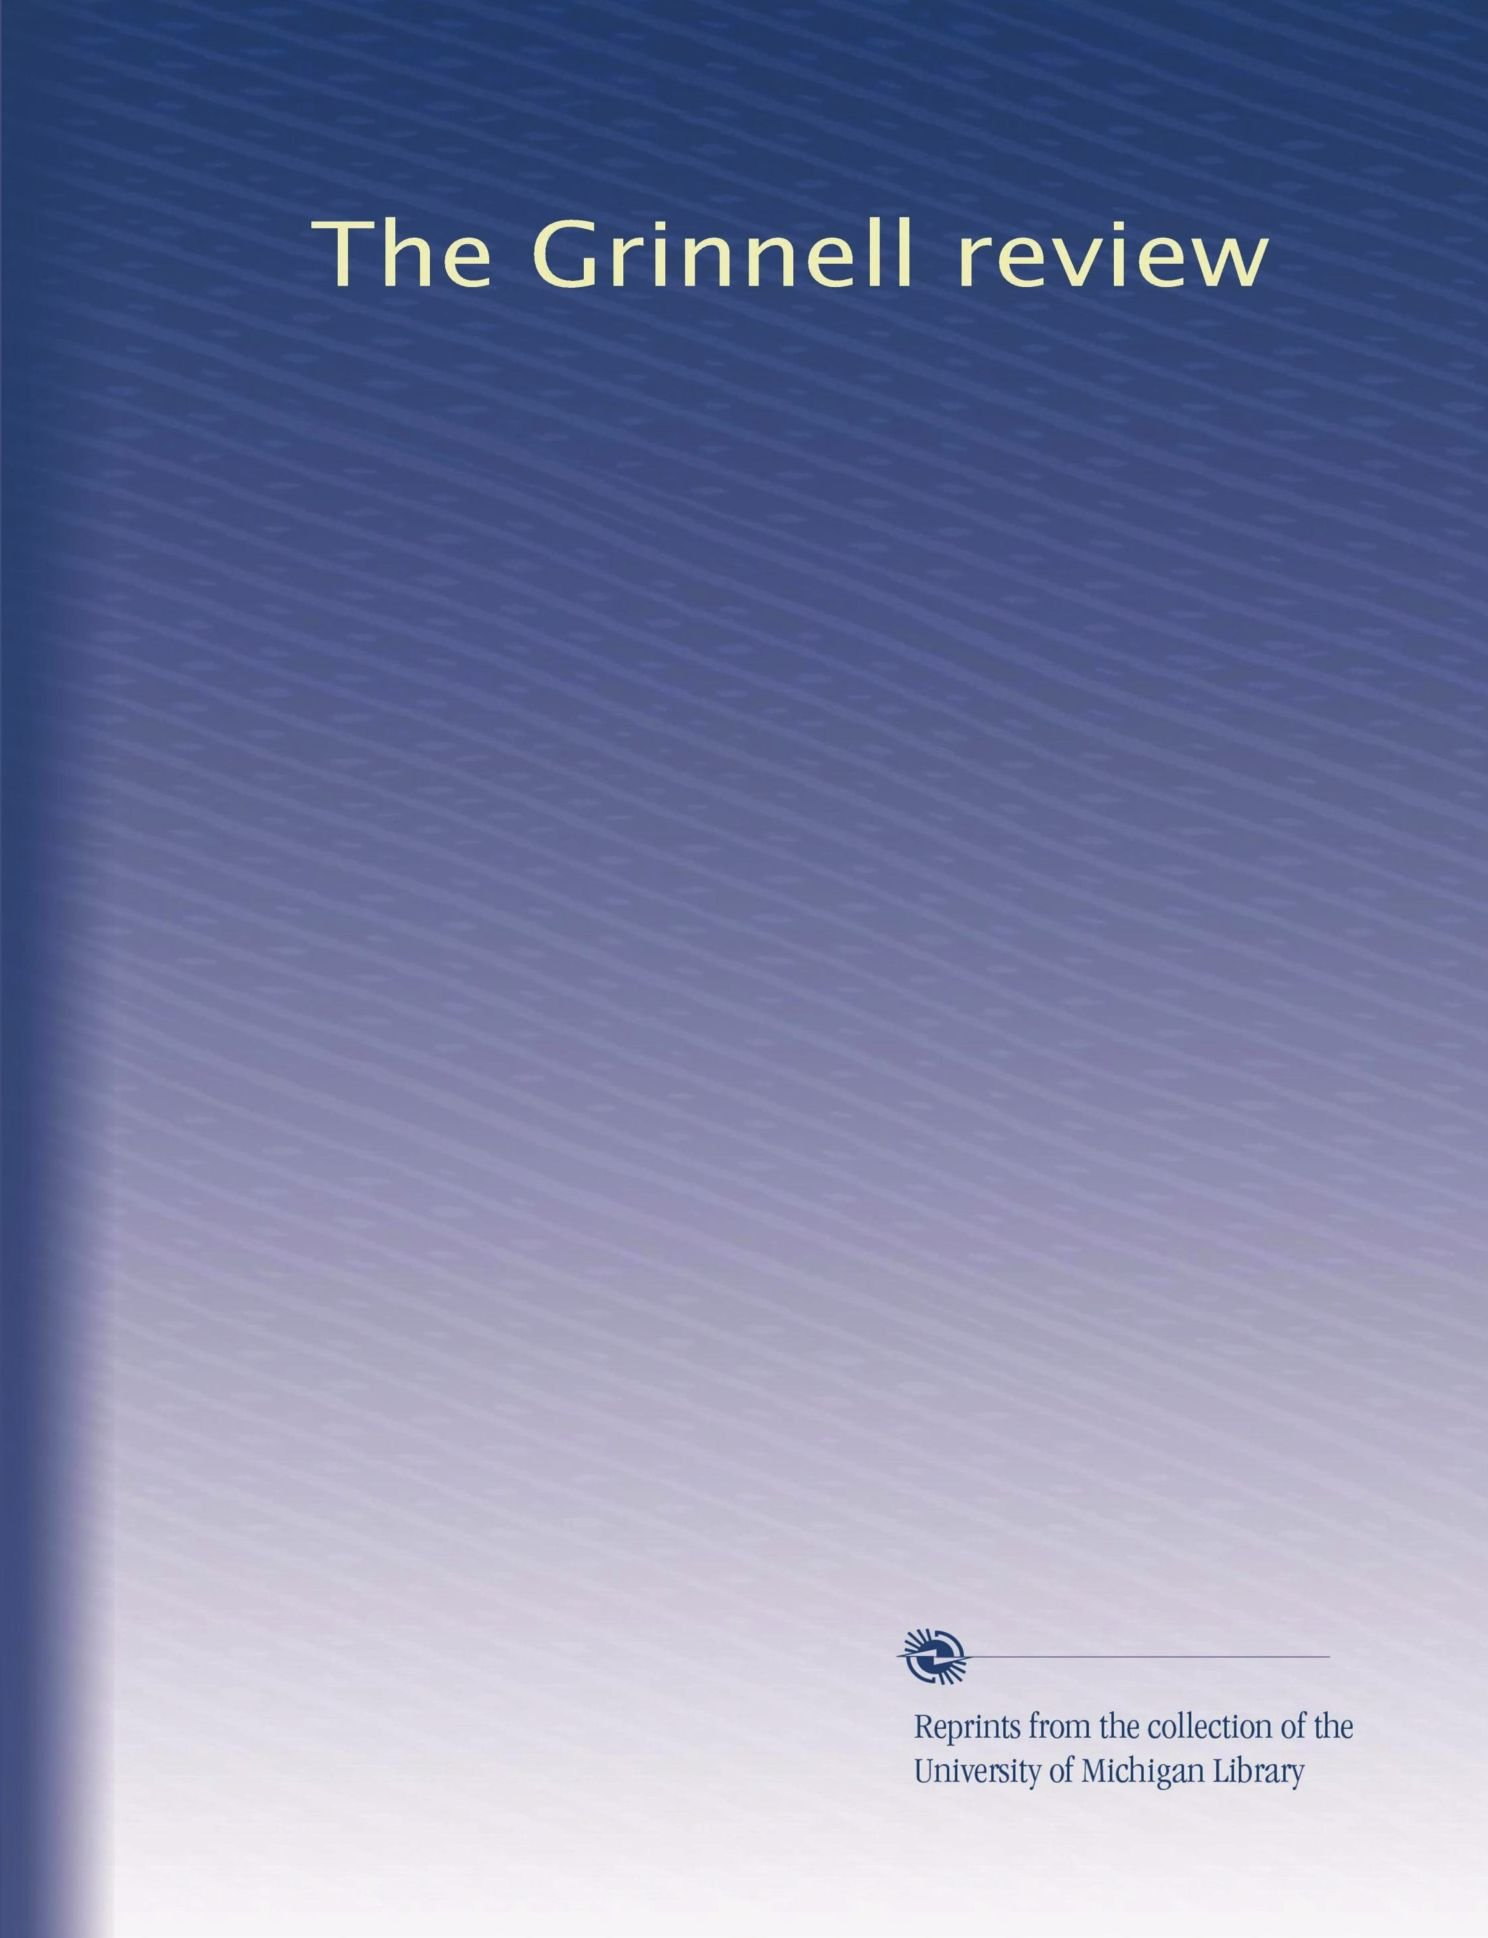 Download The Grinnell review ebook